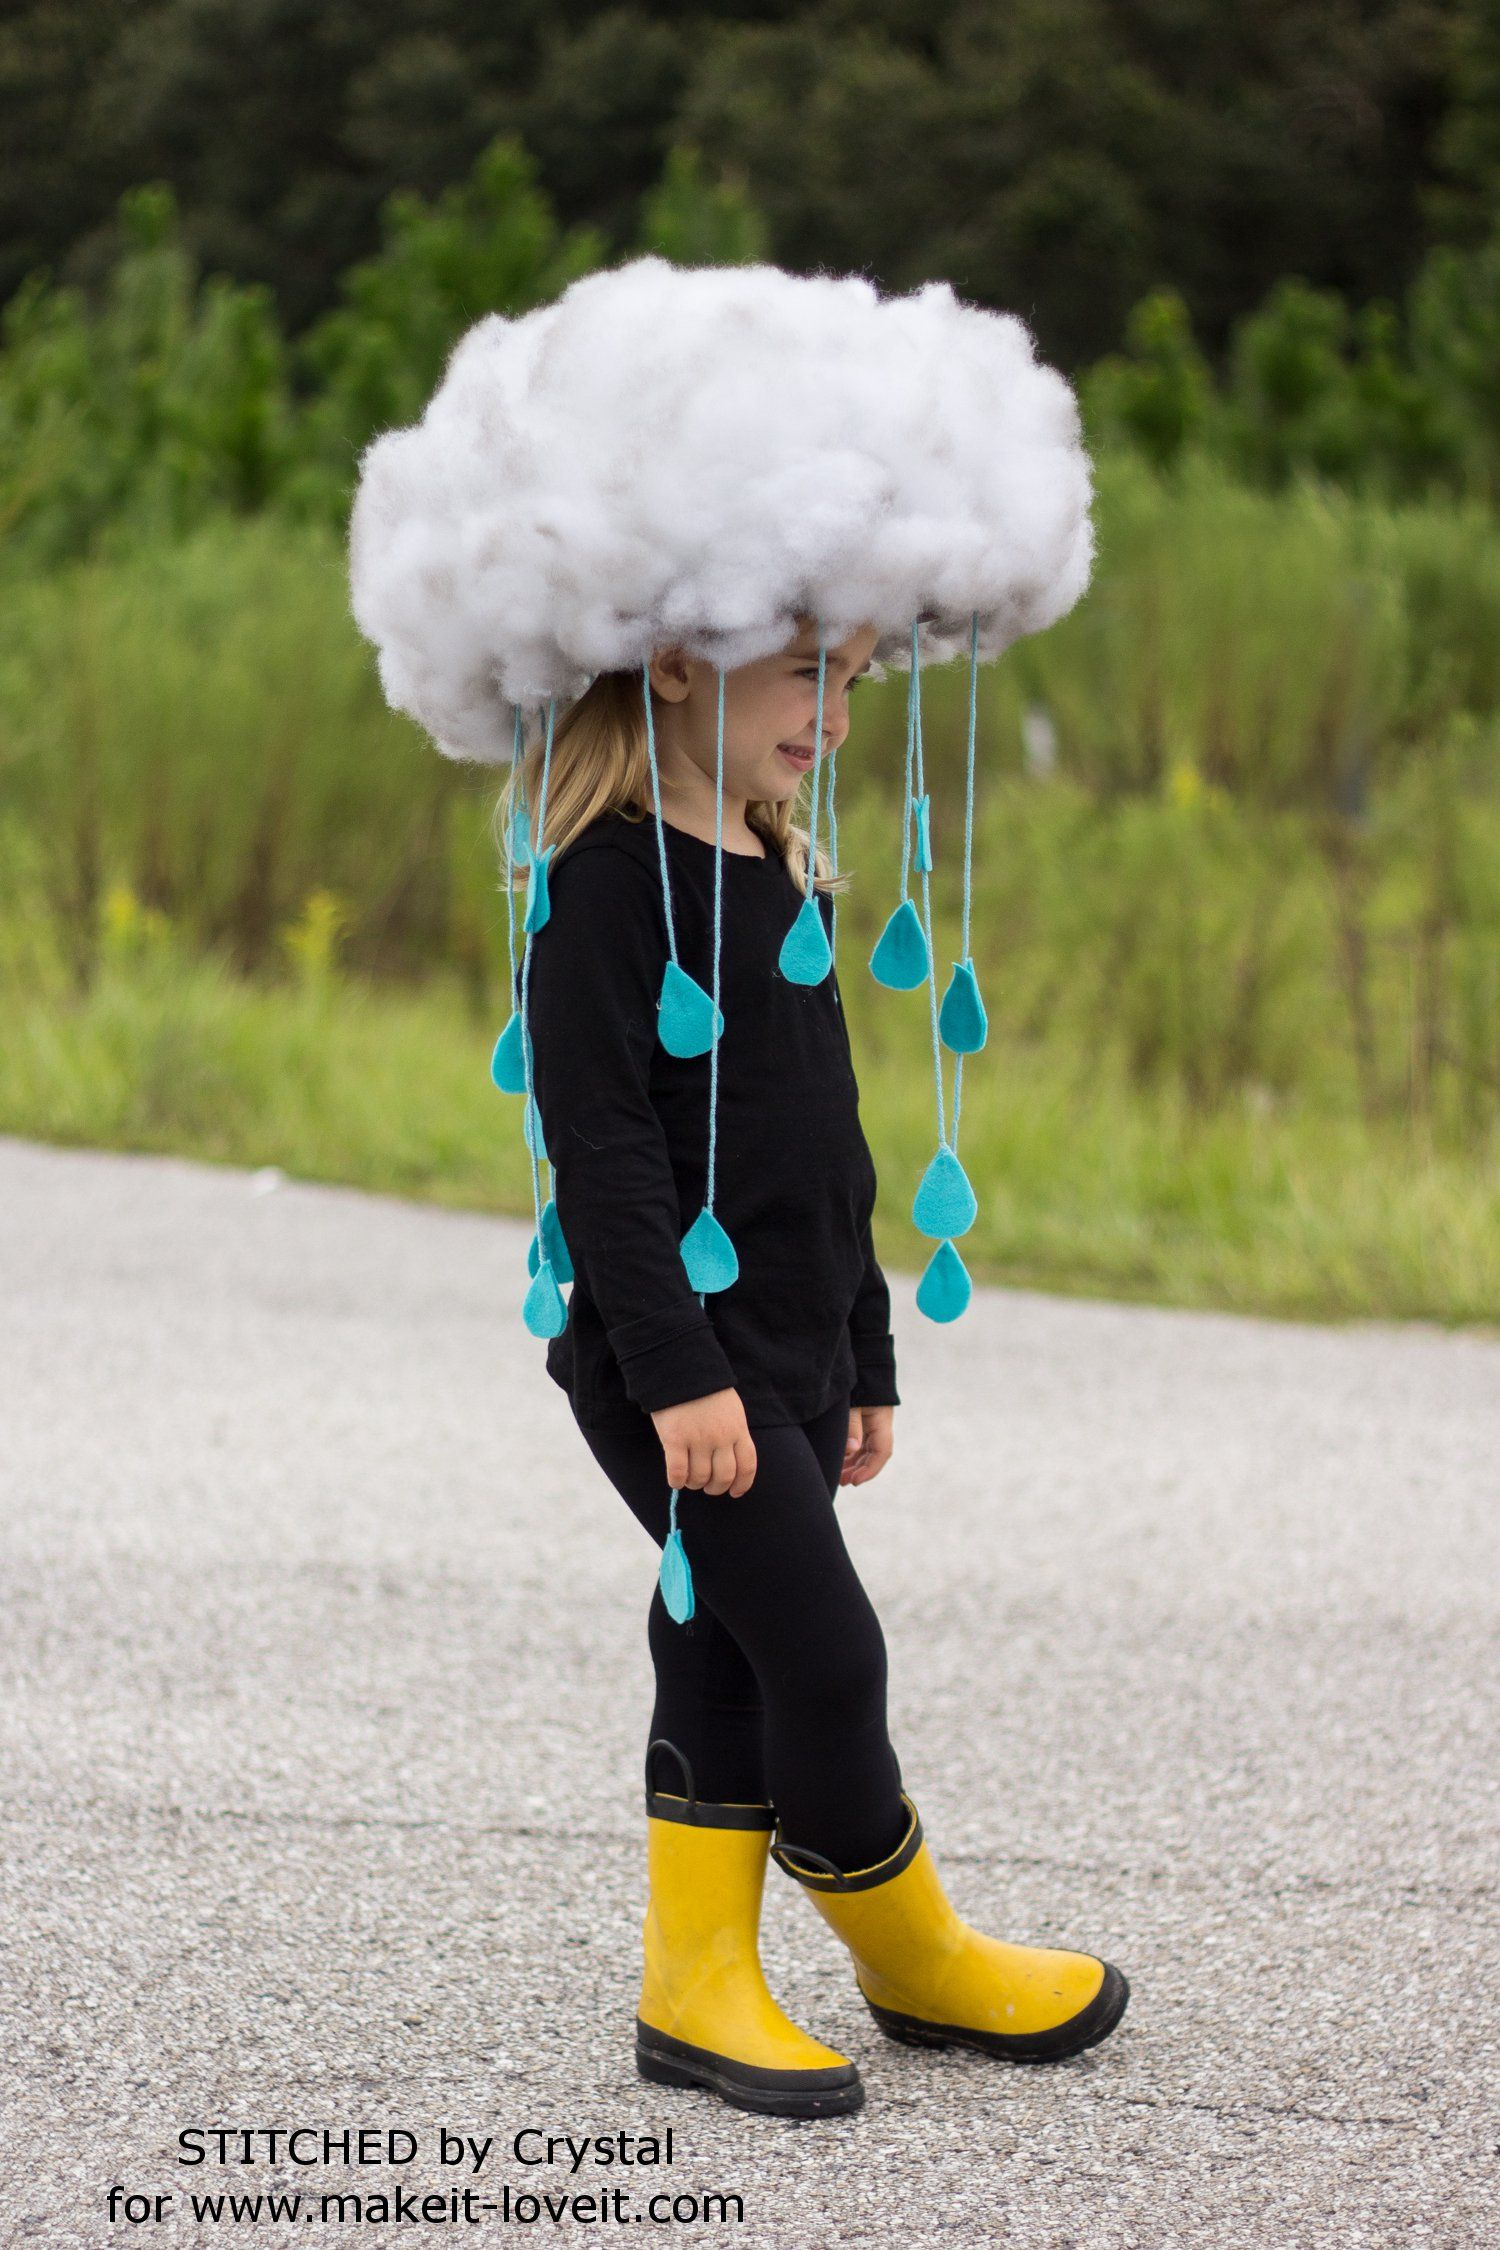 Halloween Costume Quick.Make A Quick Easy Rain Cloud Costume For All Ages Halloween